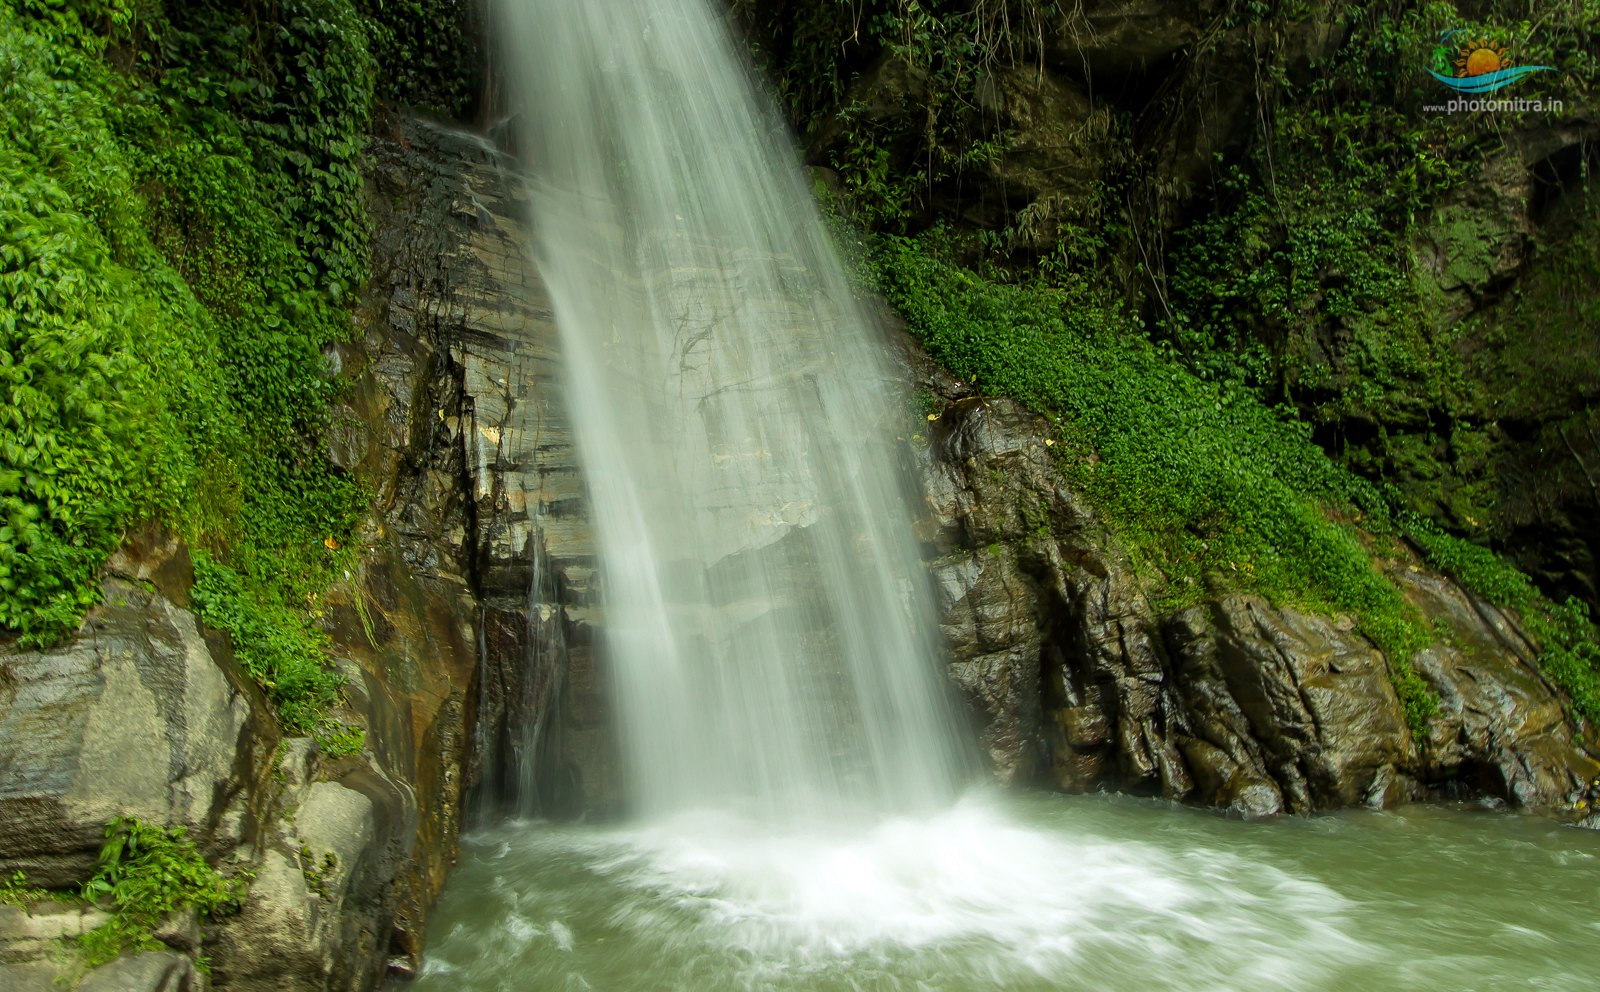 Ban Jhakri Falls. Photo: Amitra Kar/Flickr